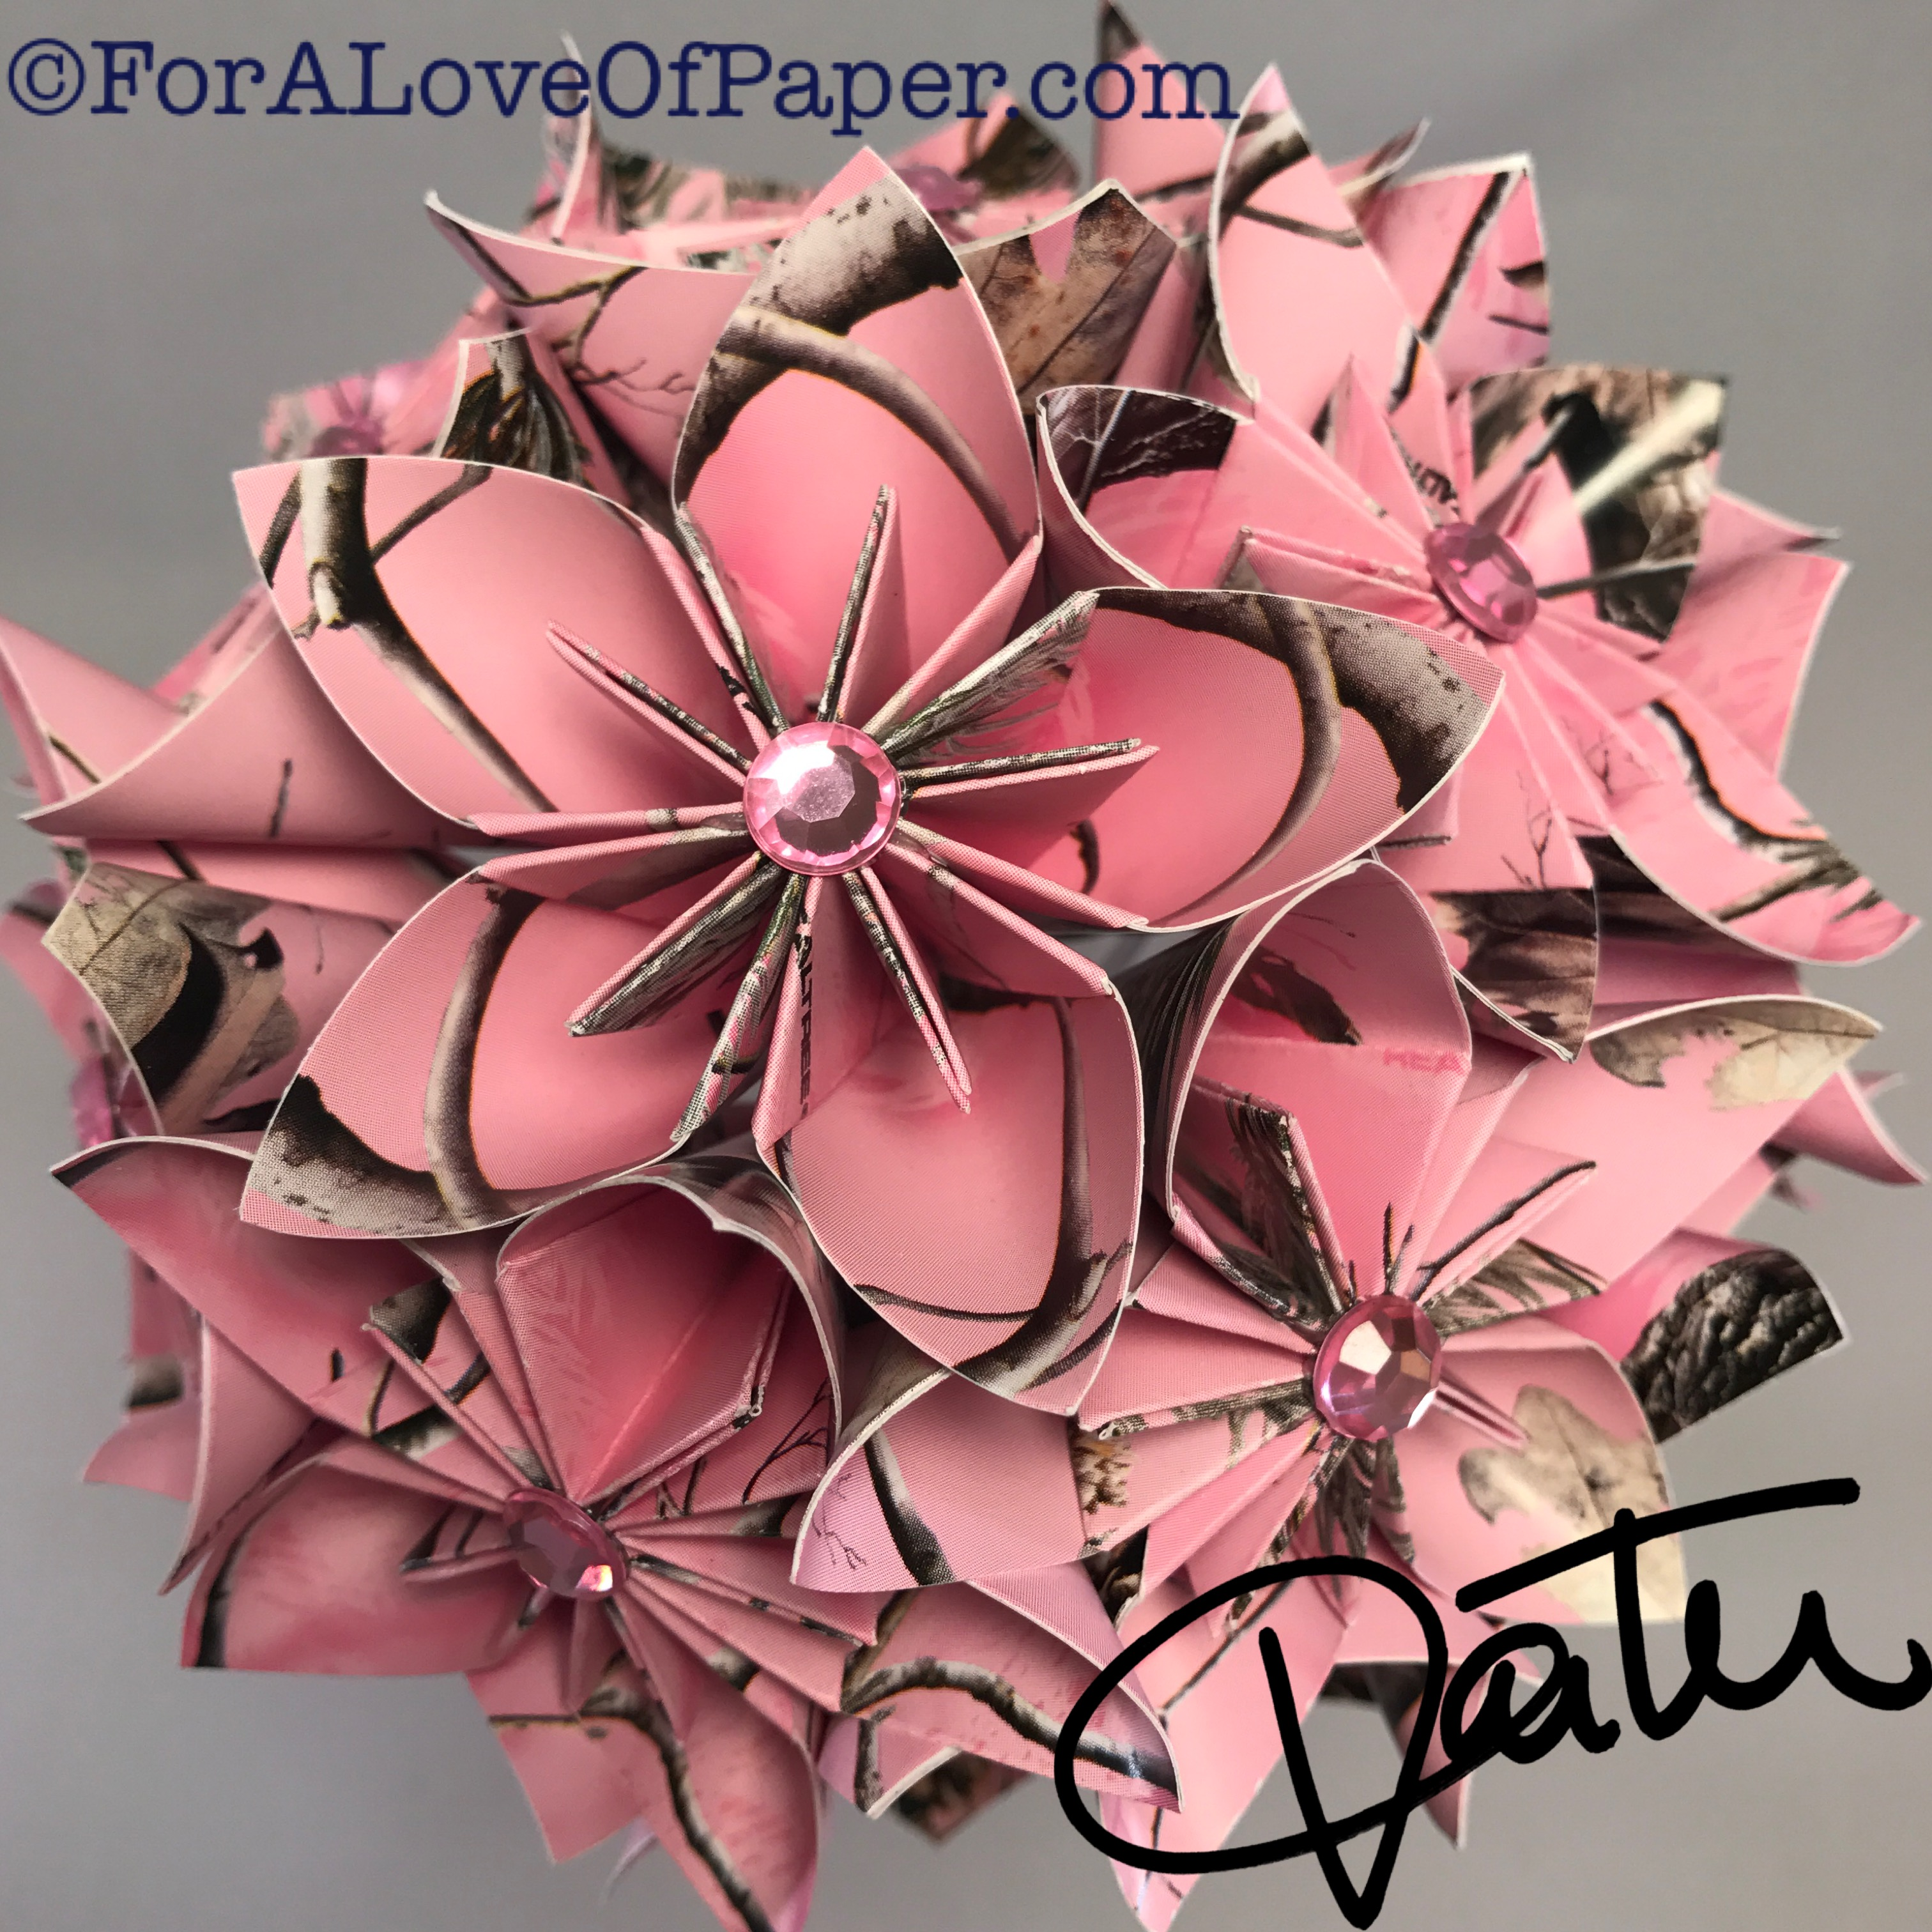 Paper flowers in pink camouflage themed scrapbook paper